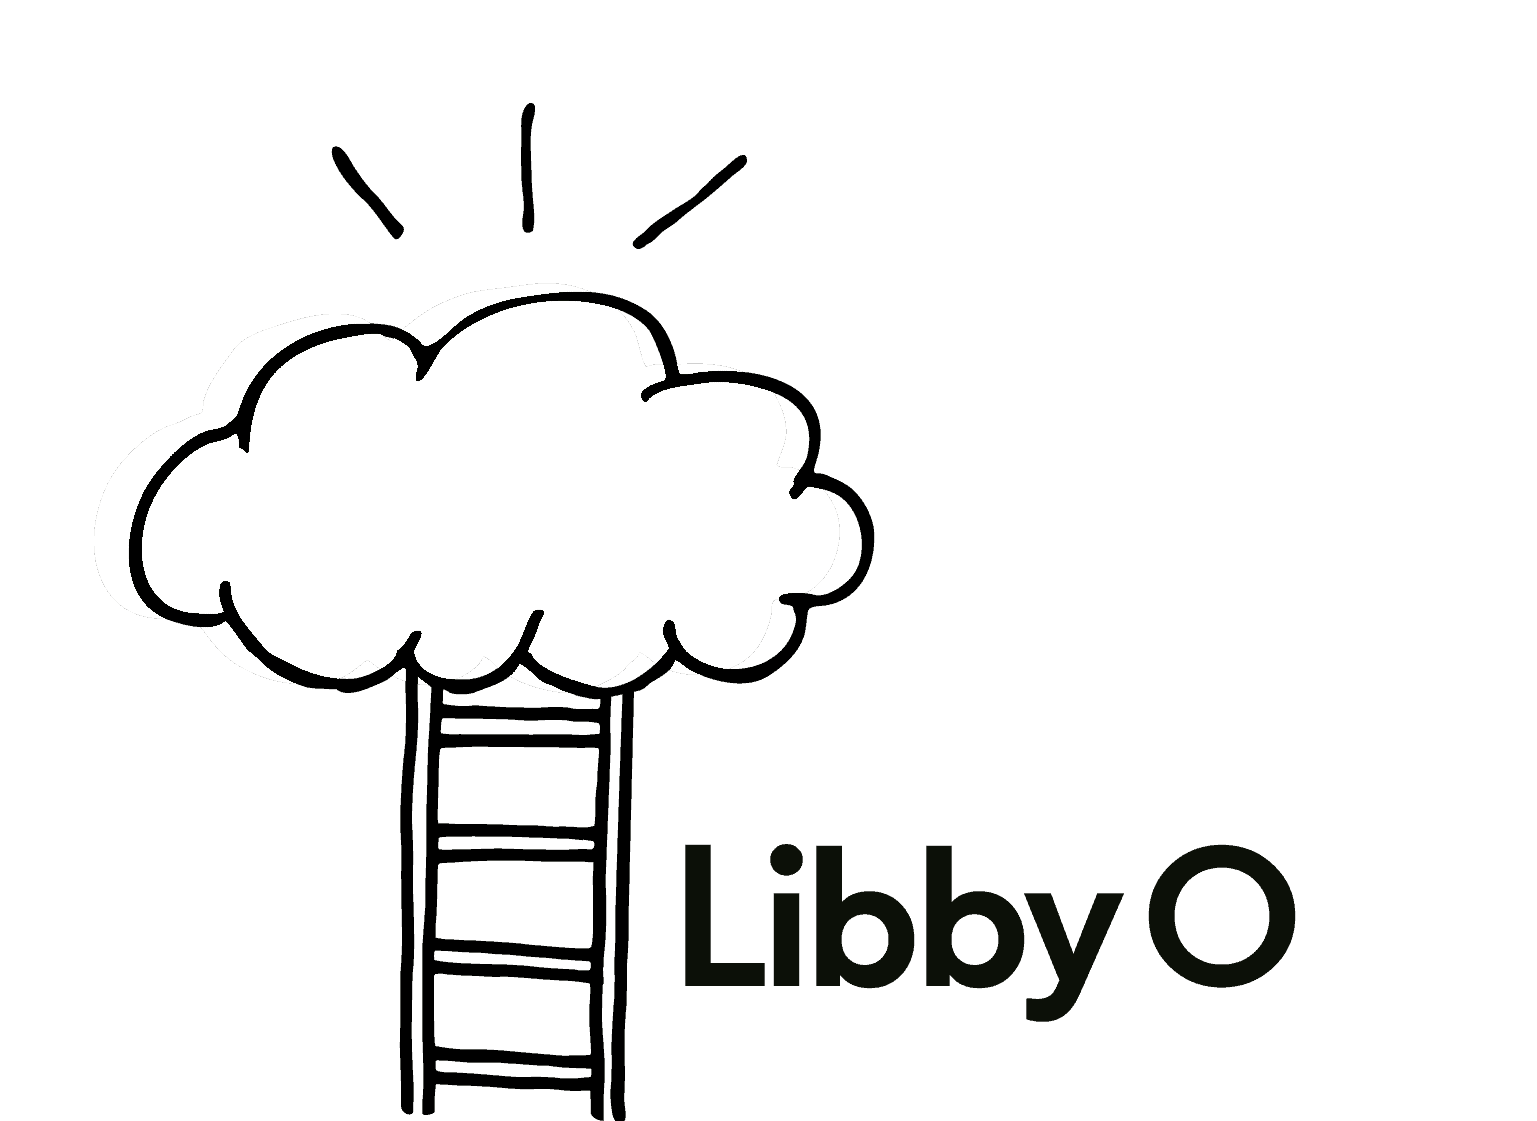 Libby O Corporate Coaching